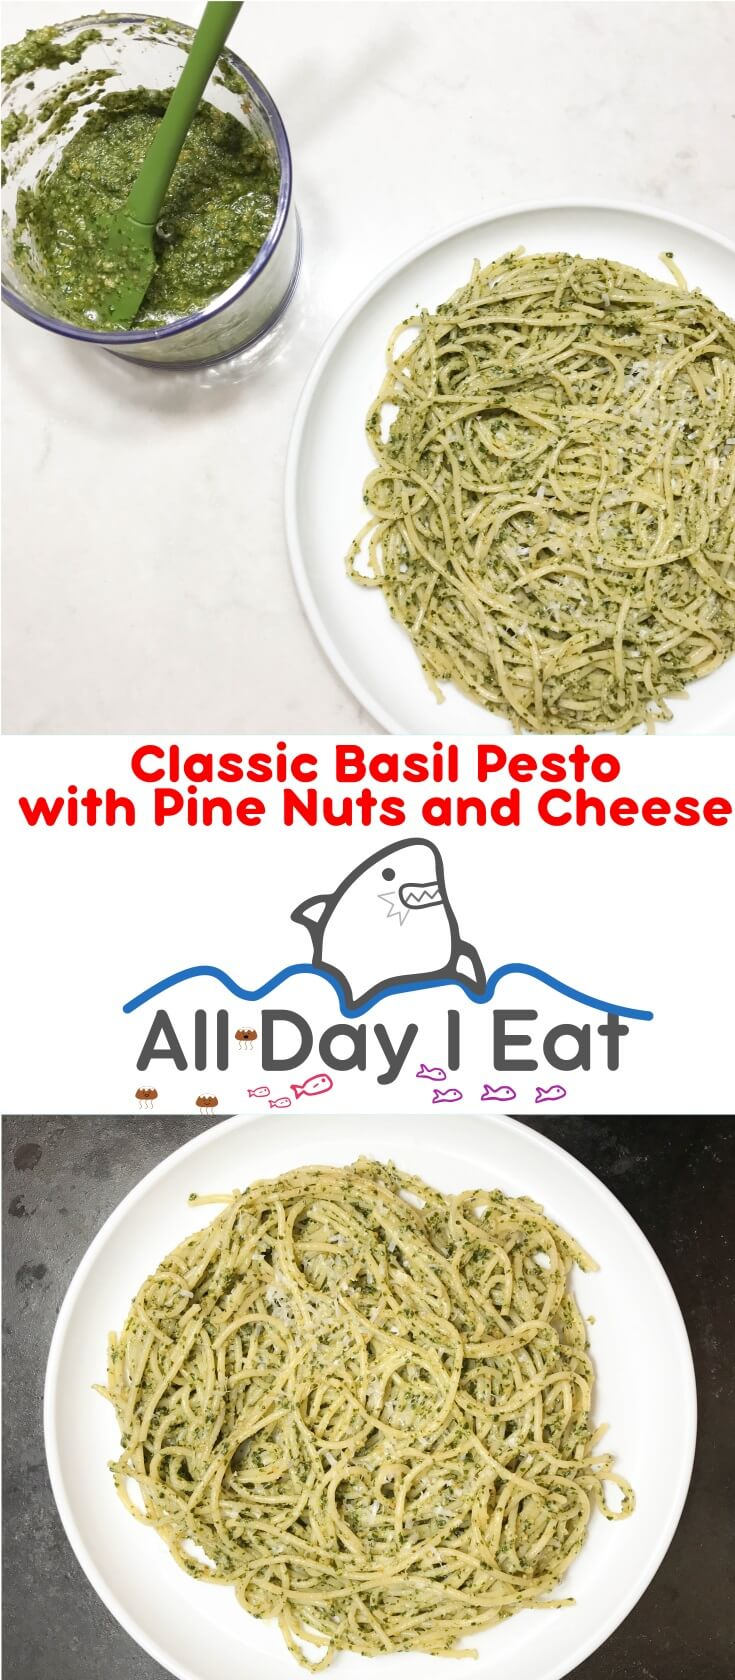 Classic Basil Pesto with Pine Nuts and Cheese. I made this with my Aerogarden grown hydroponic Sweet Italian Basil! It was one of the best I've ever tasted you have to try it!!! | www.alldayieat.com